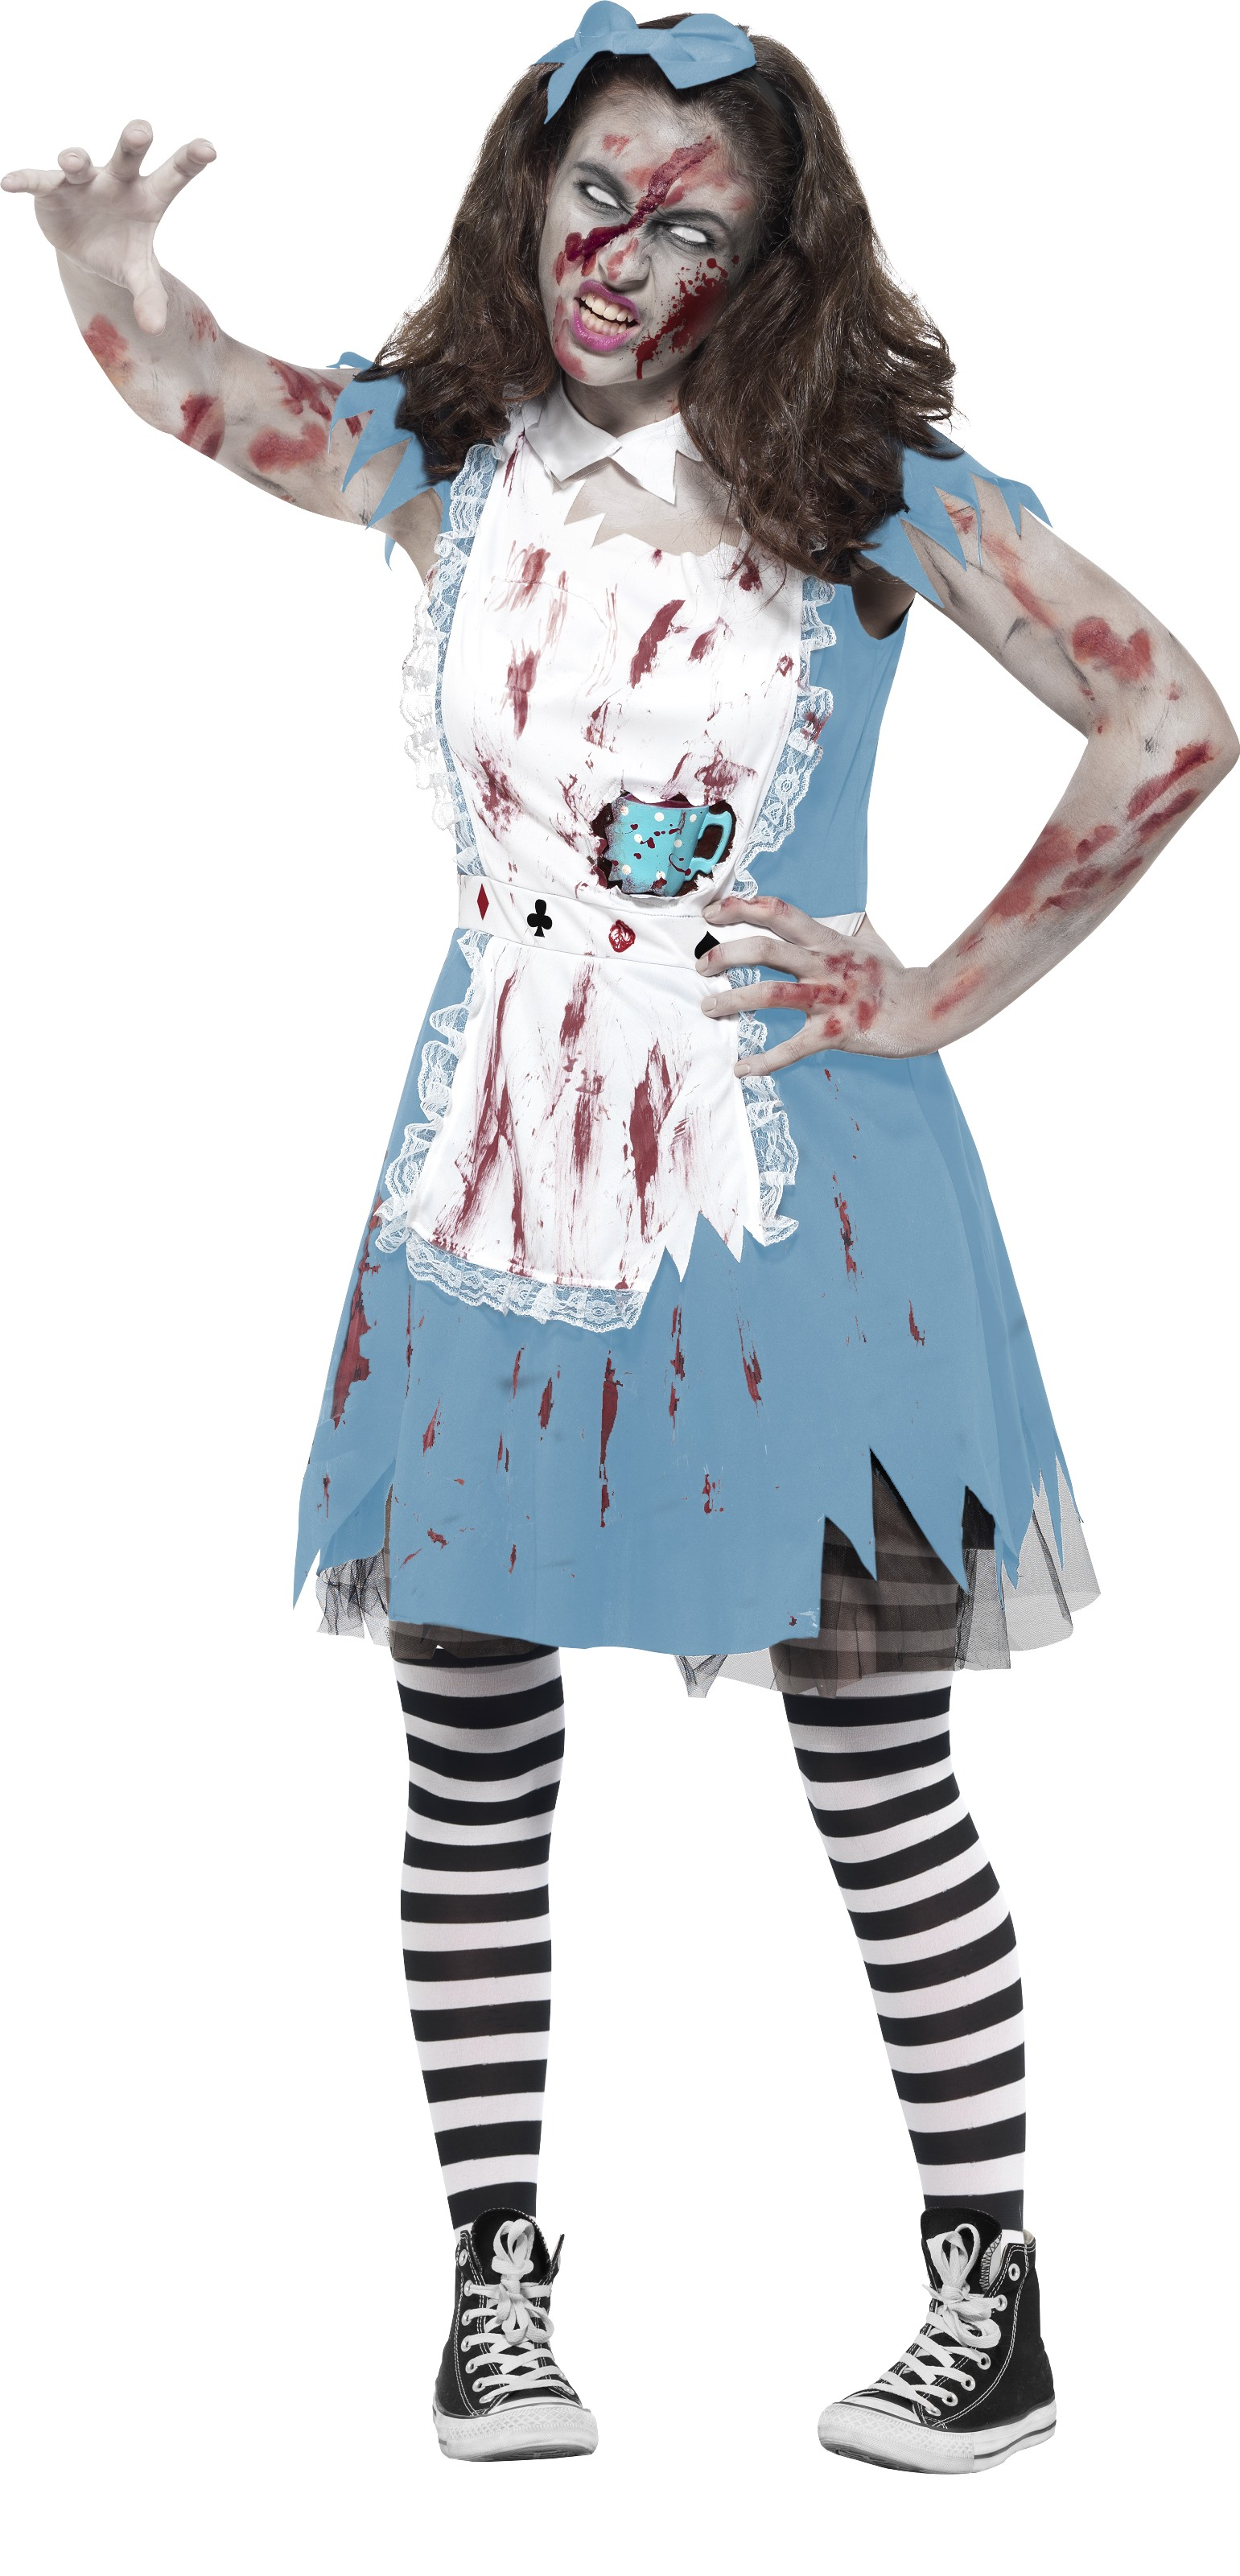 Zombie Tea Party Teens Costume | Letter "|1541|3201|?|en|2|4228507d4a9c61d973501b15f5f86d9c|False|UNLIKELY|0.3295324742794037